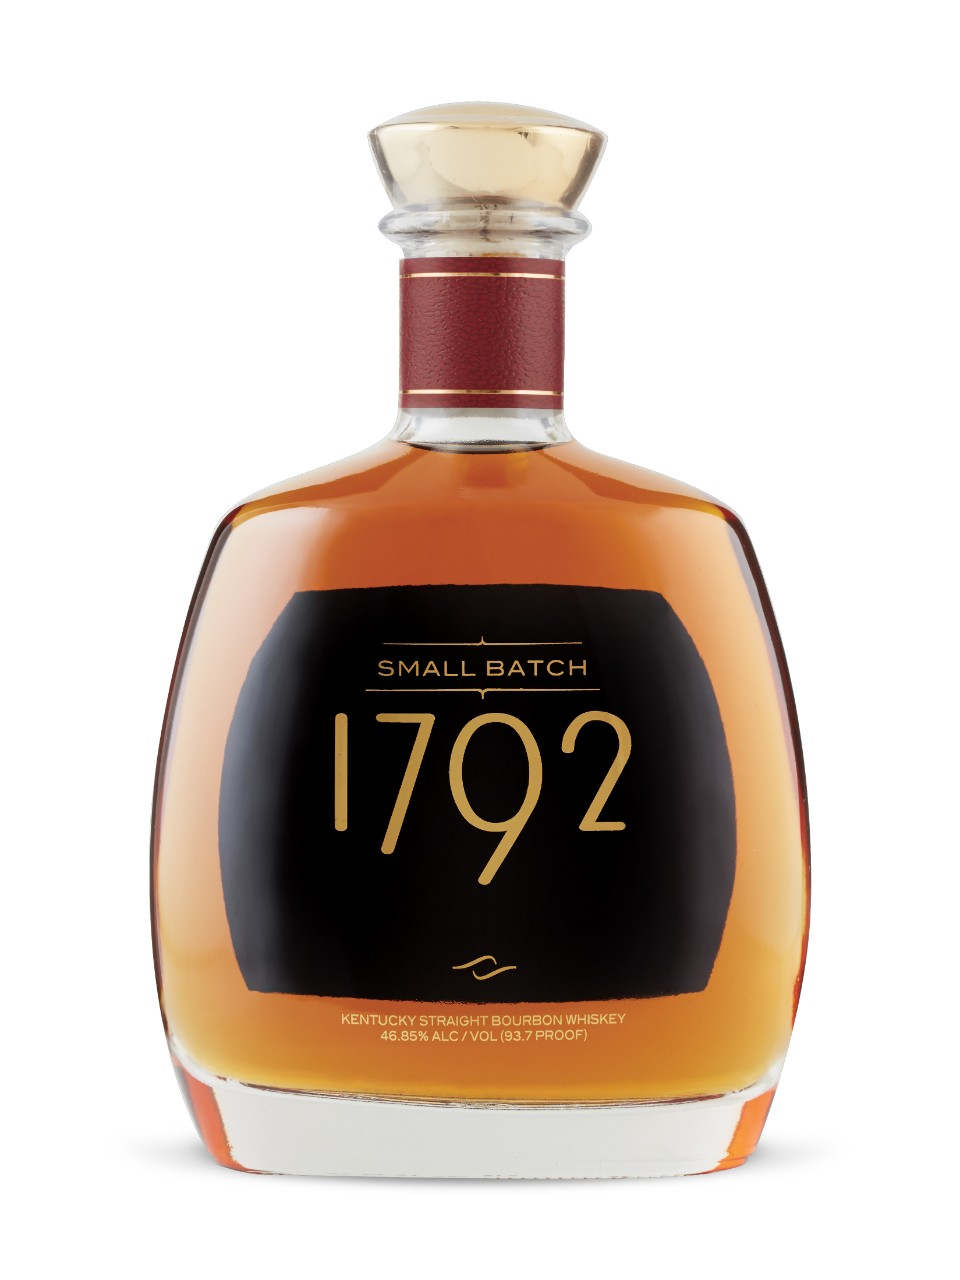 1792 Small Batch Kentucky Straight Bourbon | LCBO